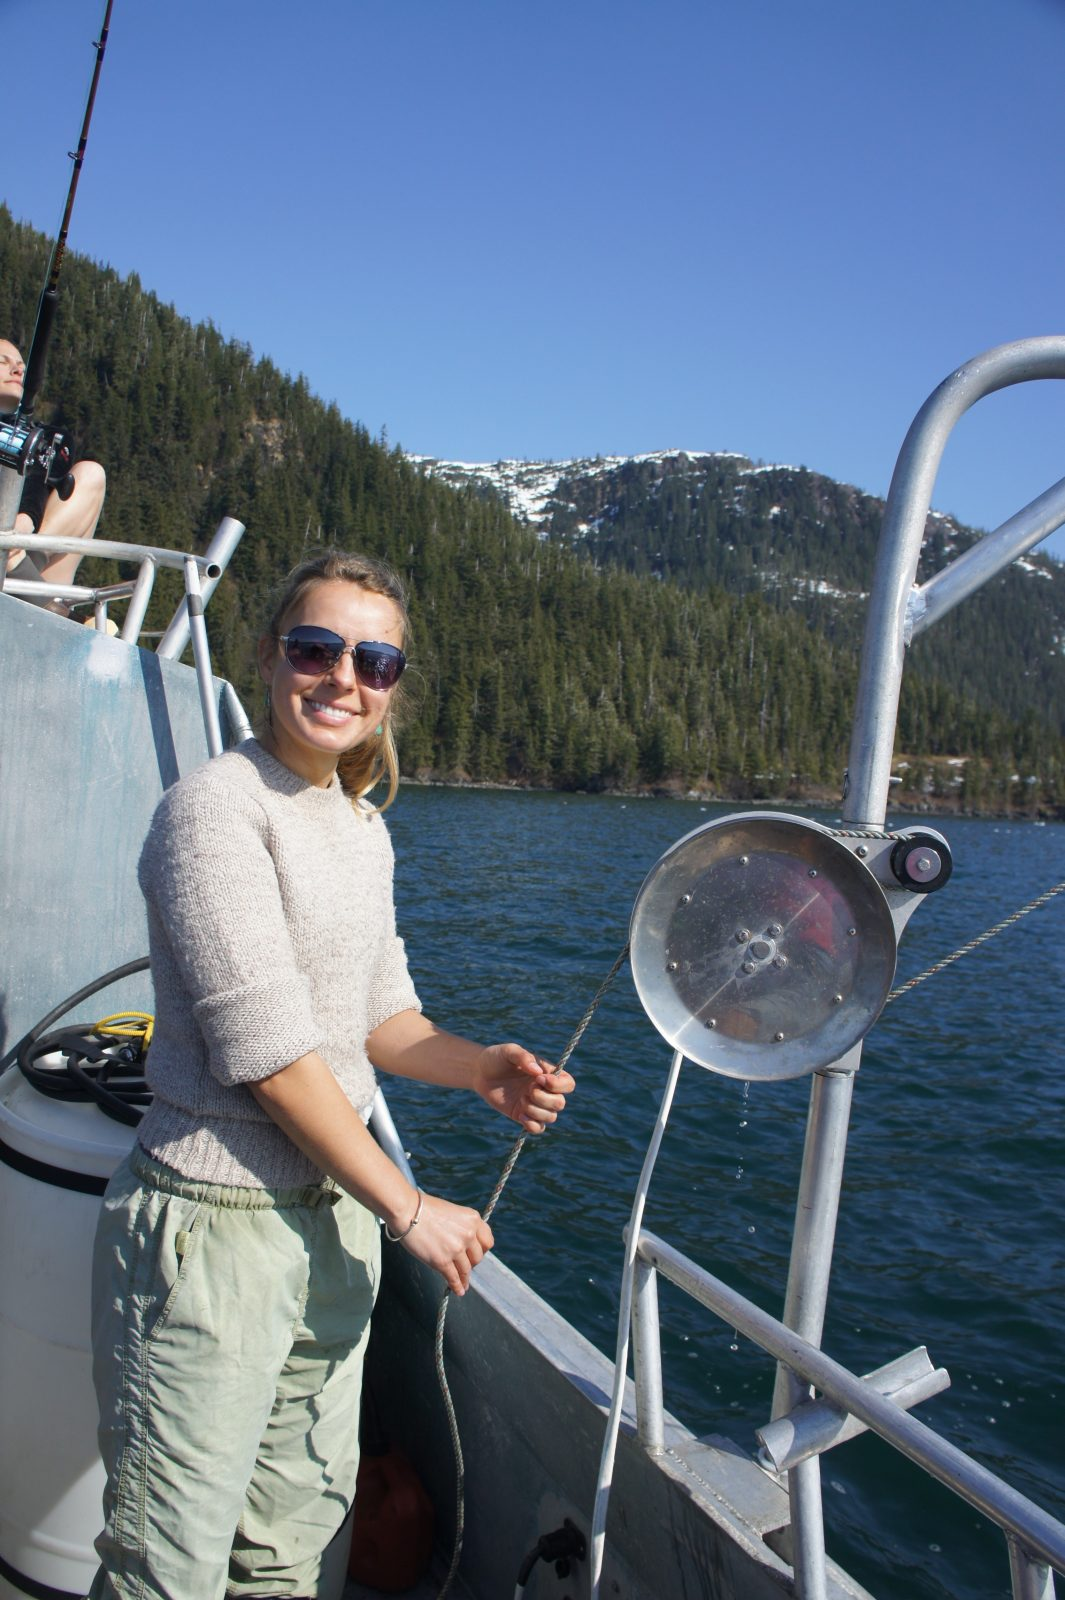 Joanna has spent years joining friends on Alaska adventures, and now works to protect Alaska's lands and waters as a legal fellow.